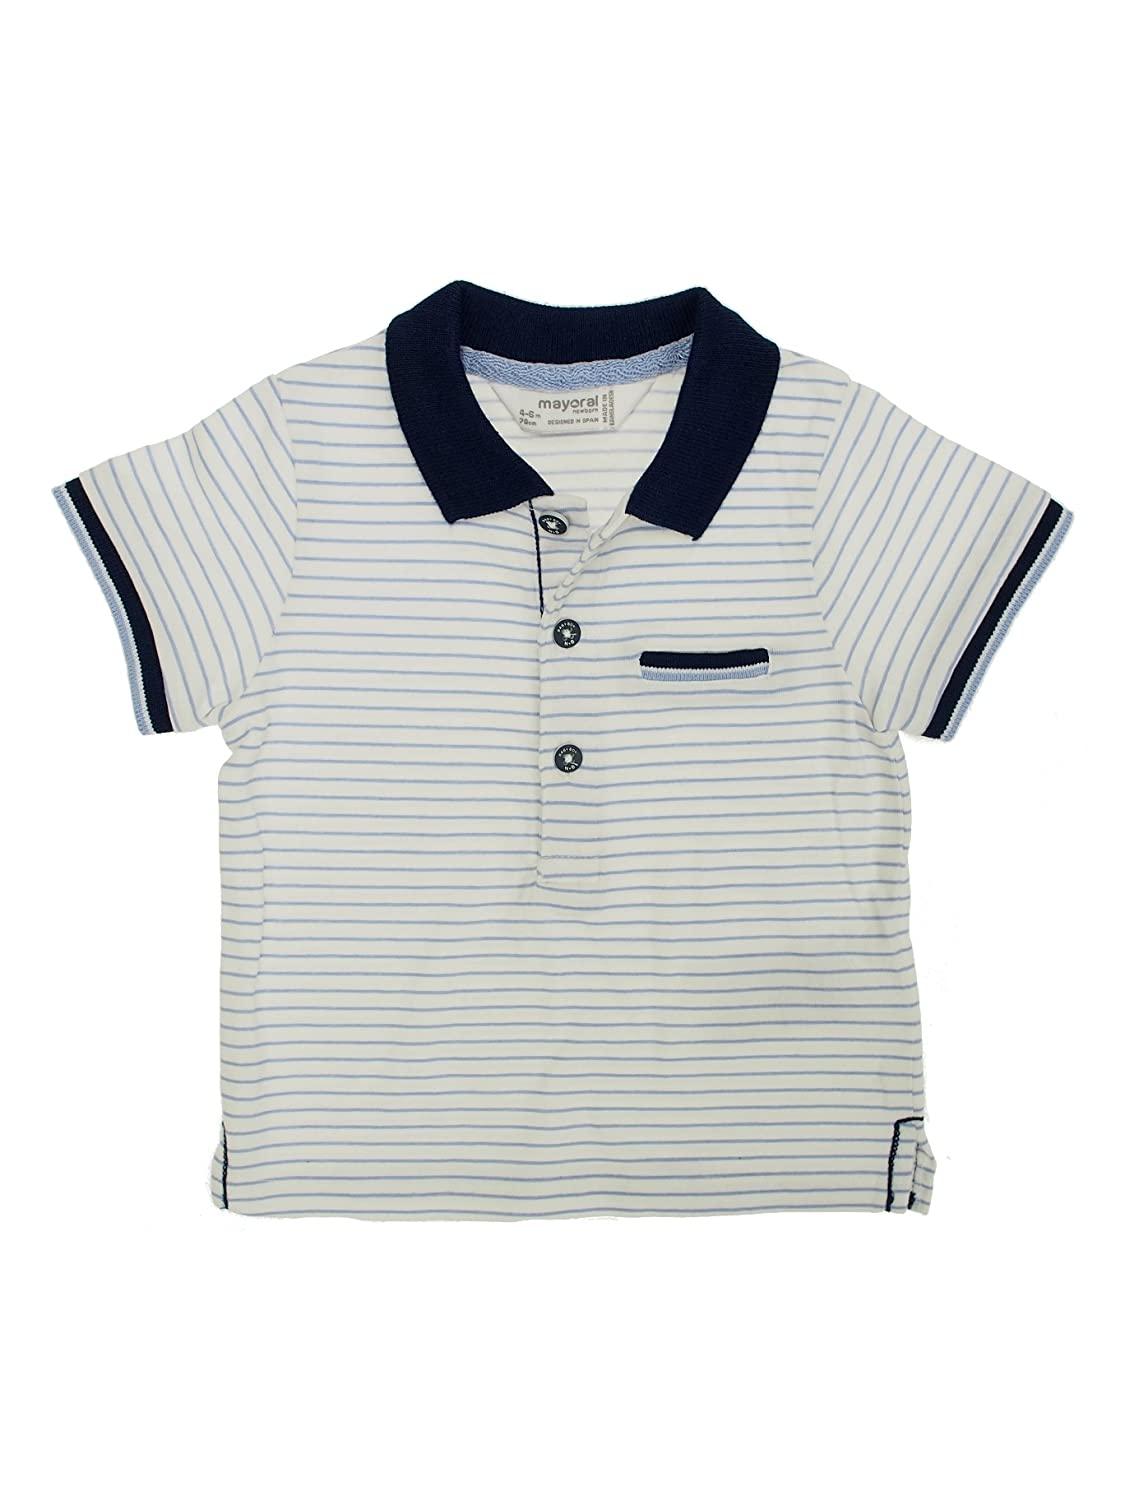 0147 Mayoral S//s Polo for Girls White